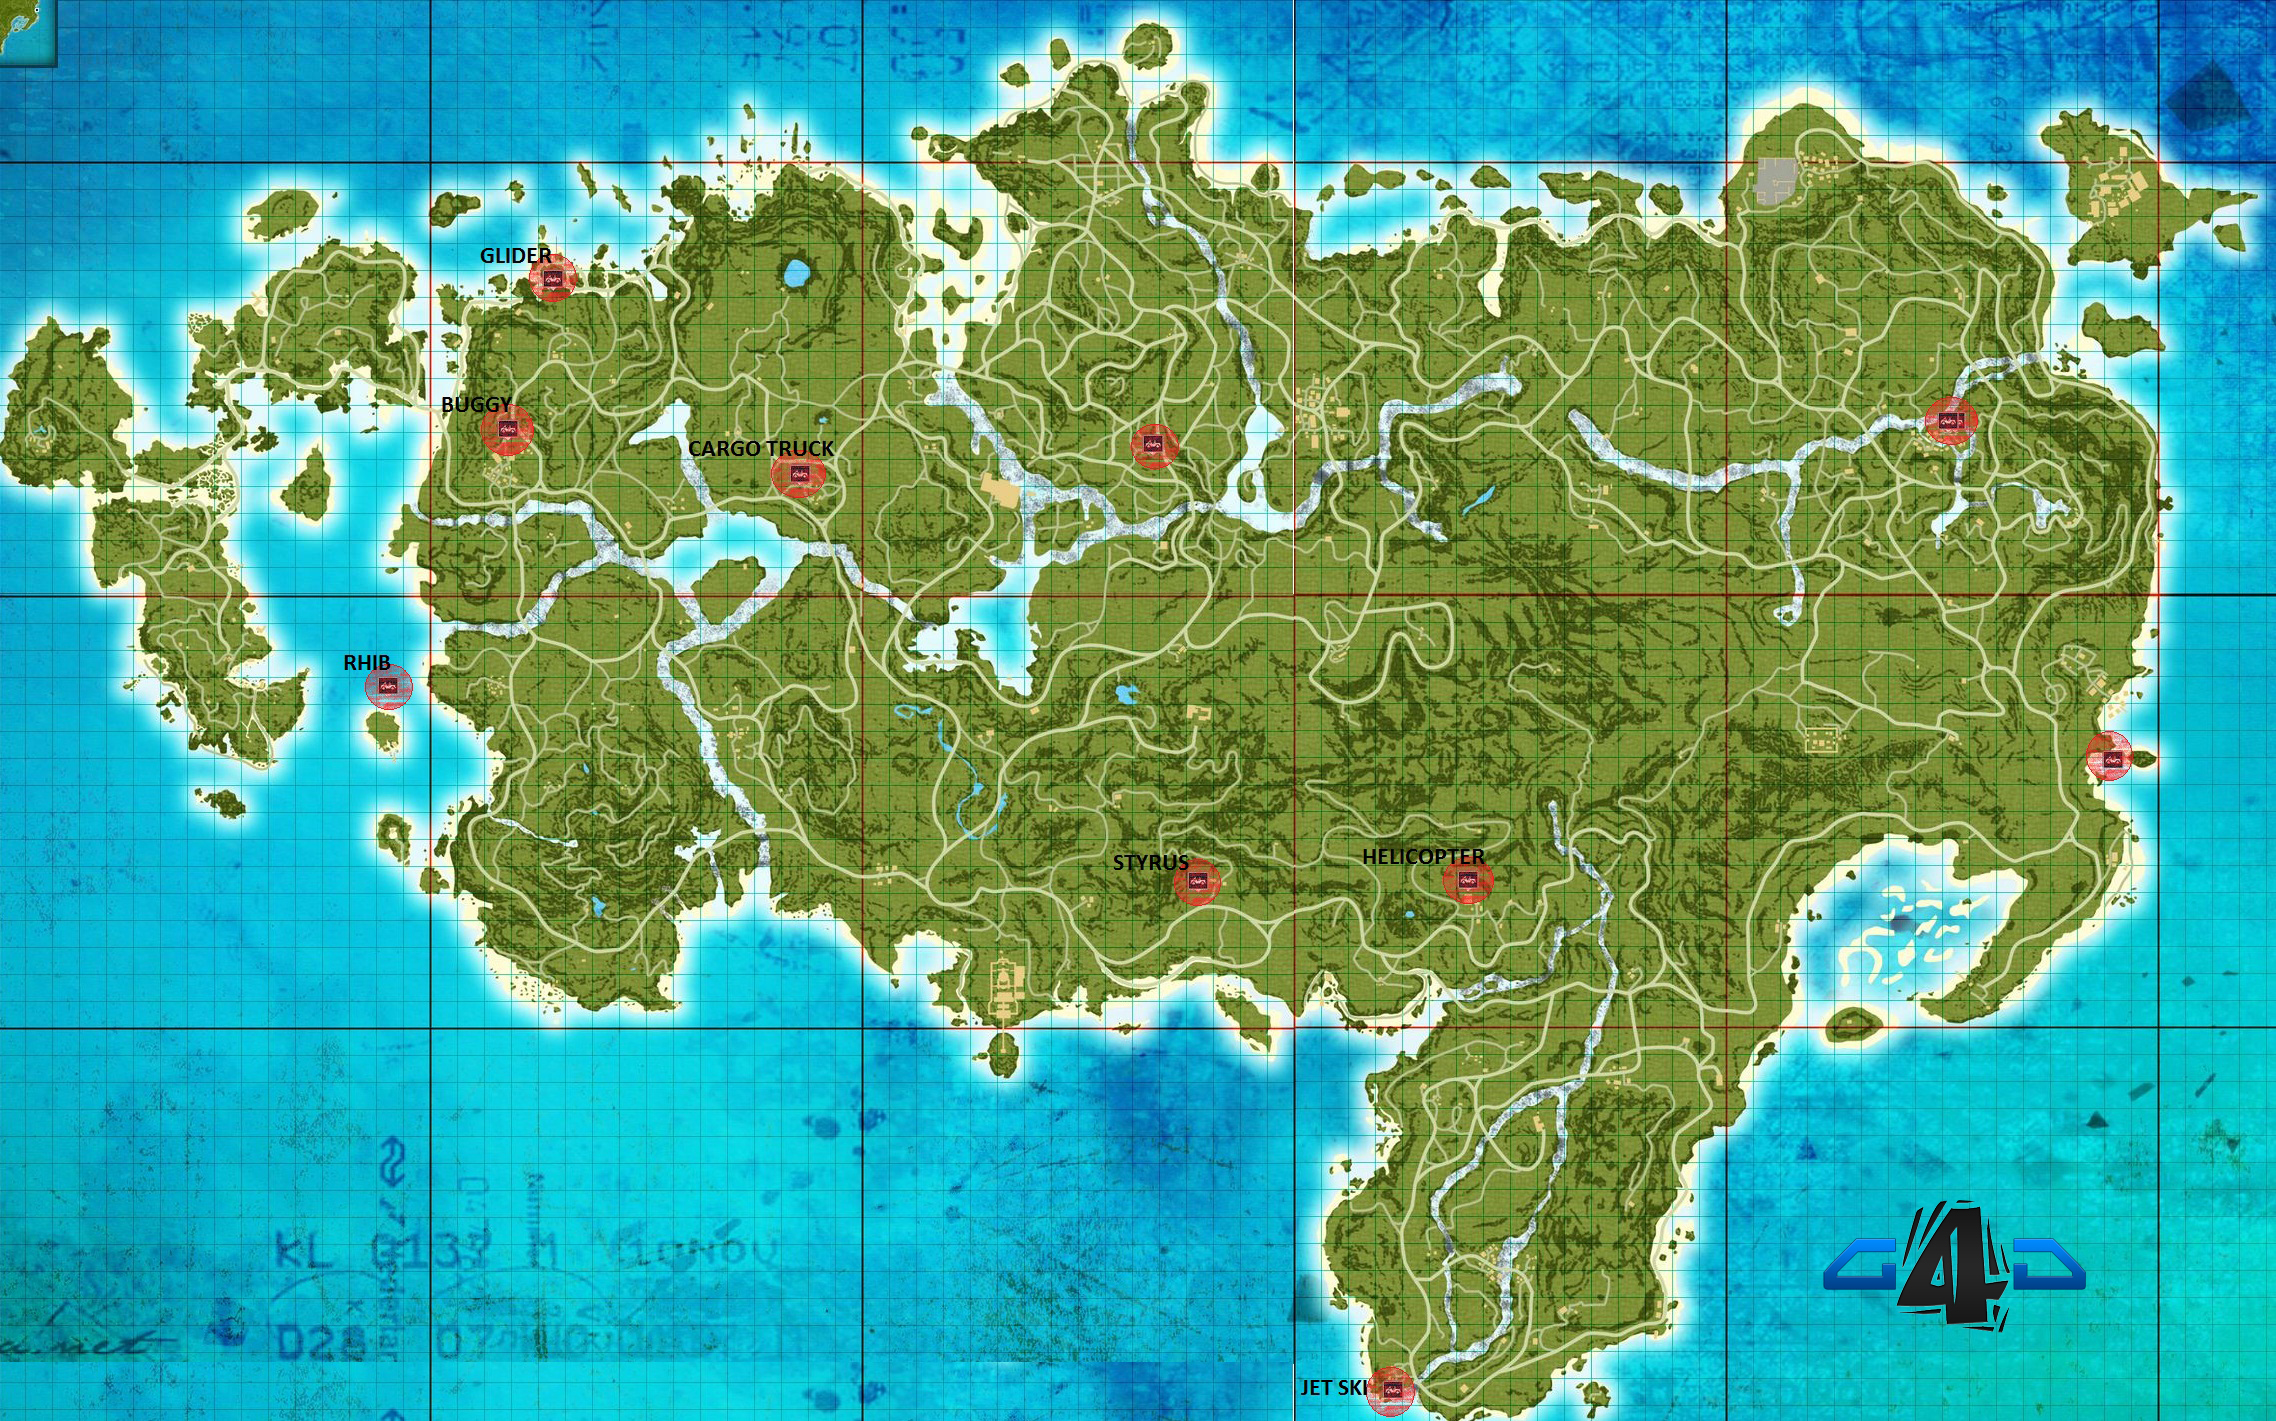 Far cry 3 far cry wiki fandom powered by wikia far cry 3 vehicles location map guide4games gumiabroncs Images